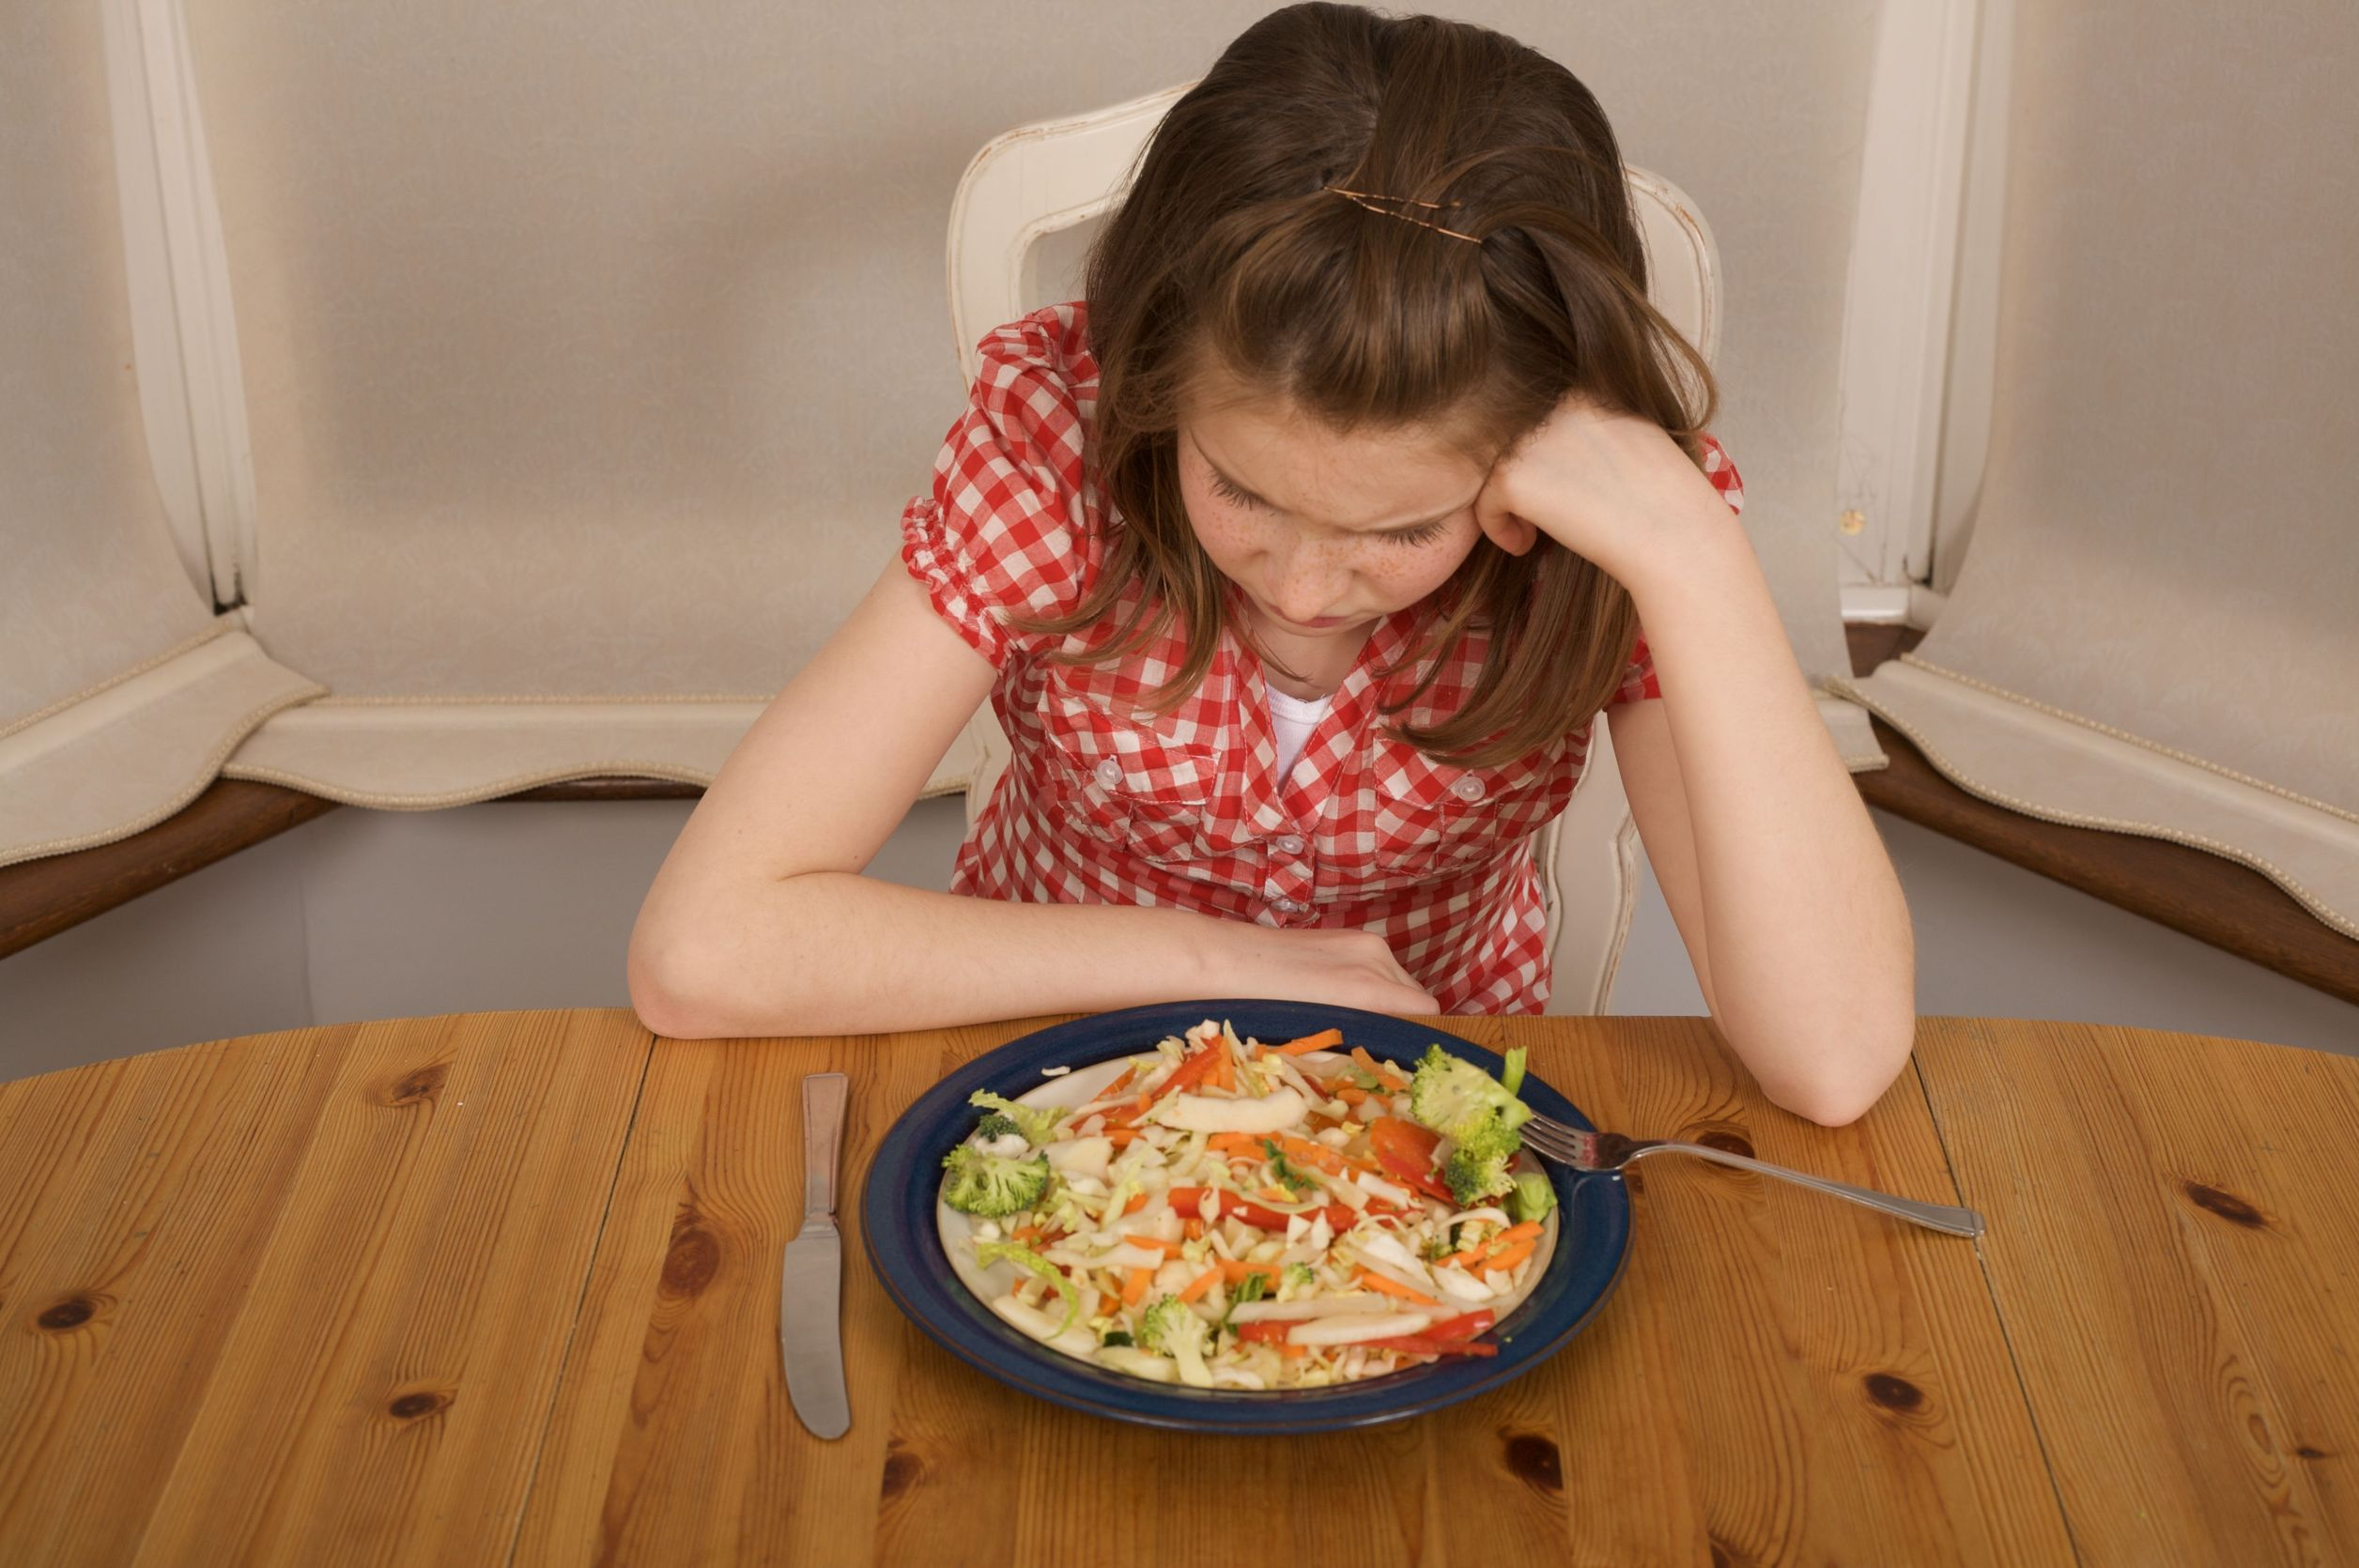 How do eating disorders affect lives